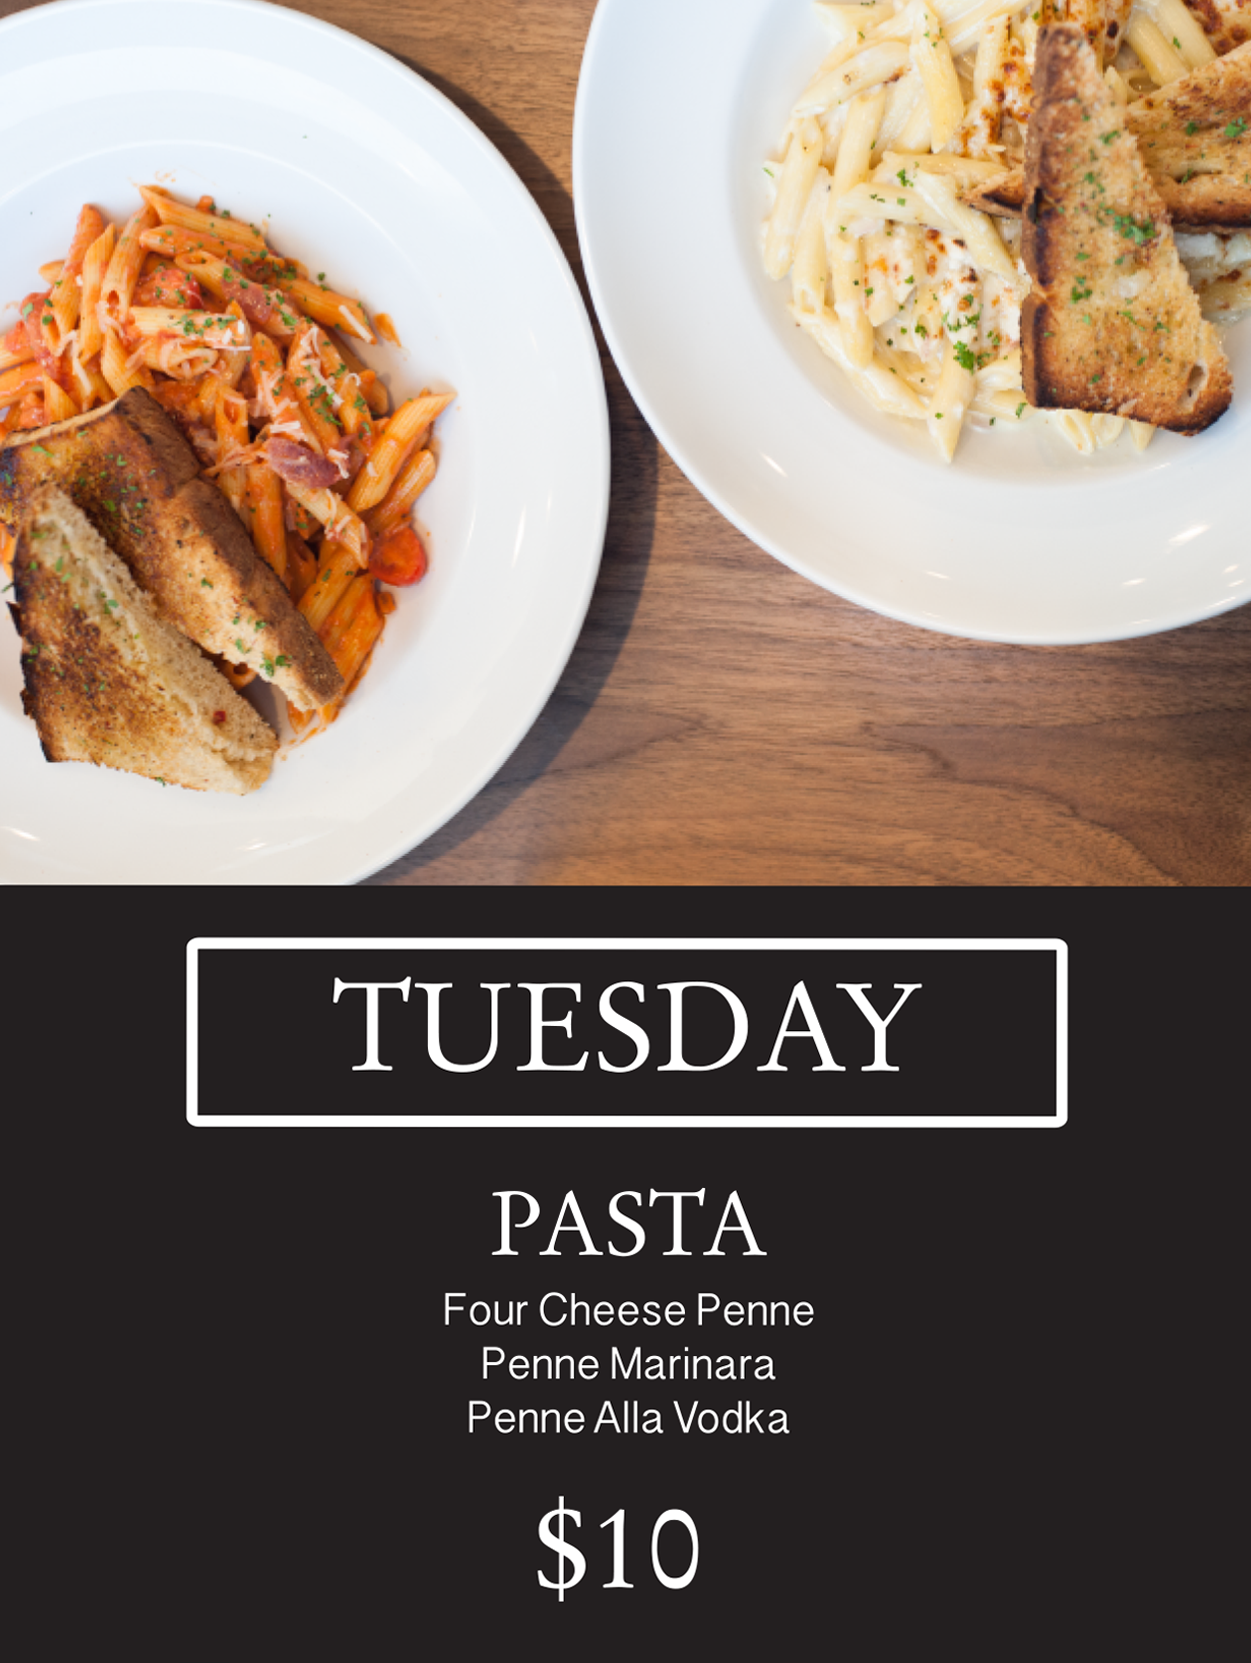 Promotional image for Tuesday $10 Pasta Special